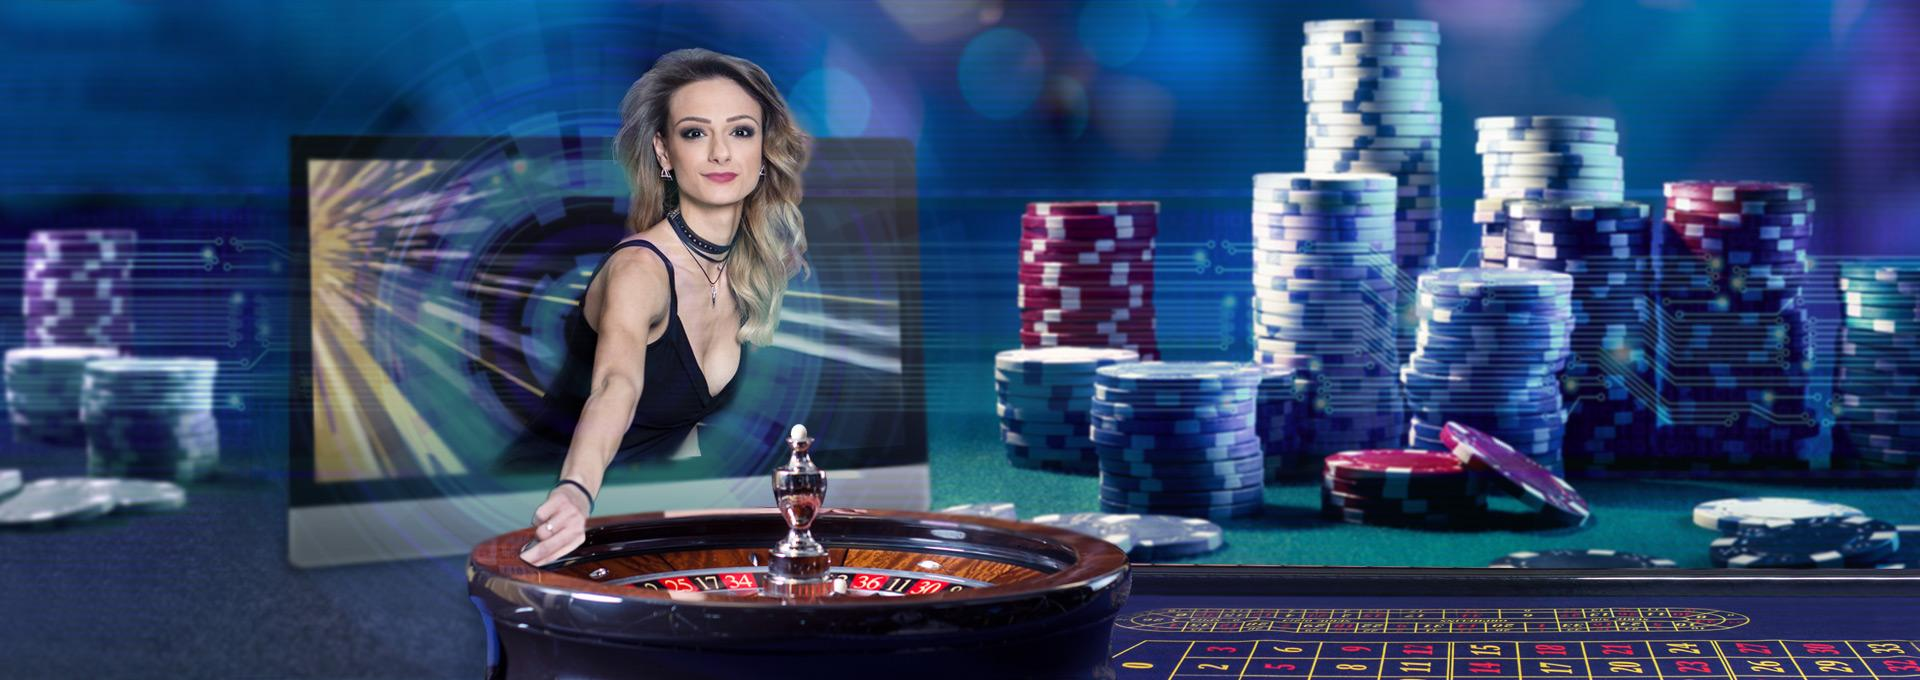 red stag casino instant coupon 2019